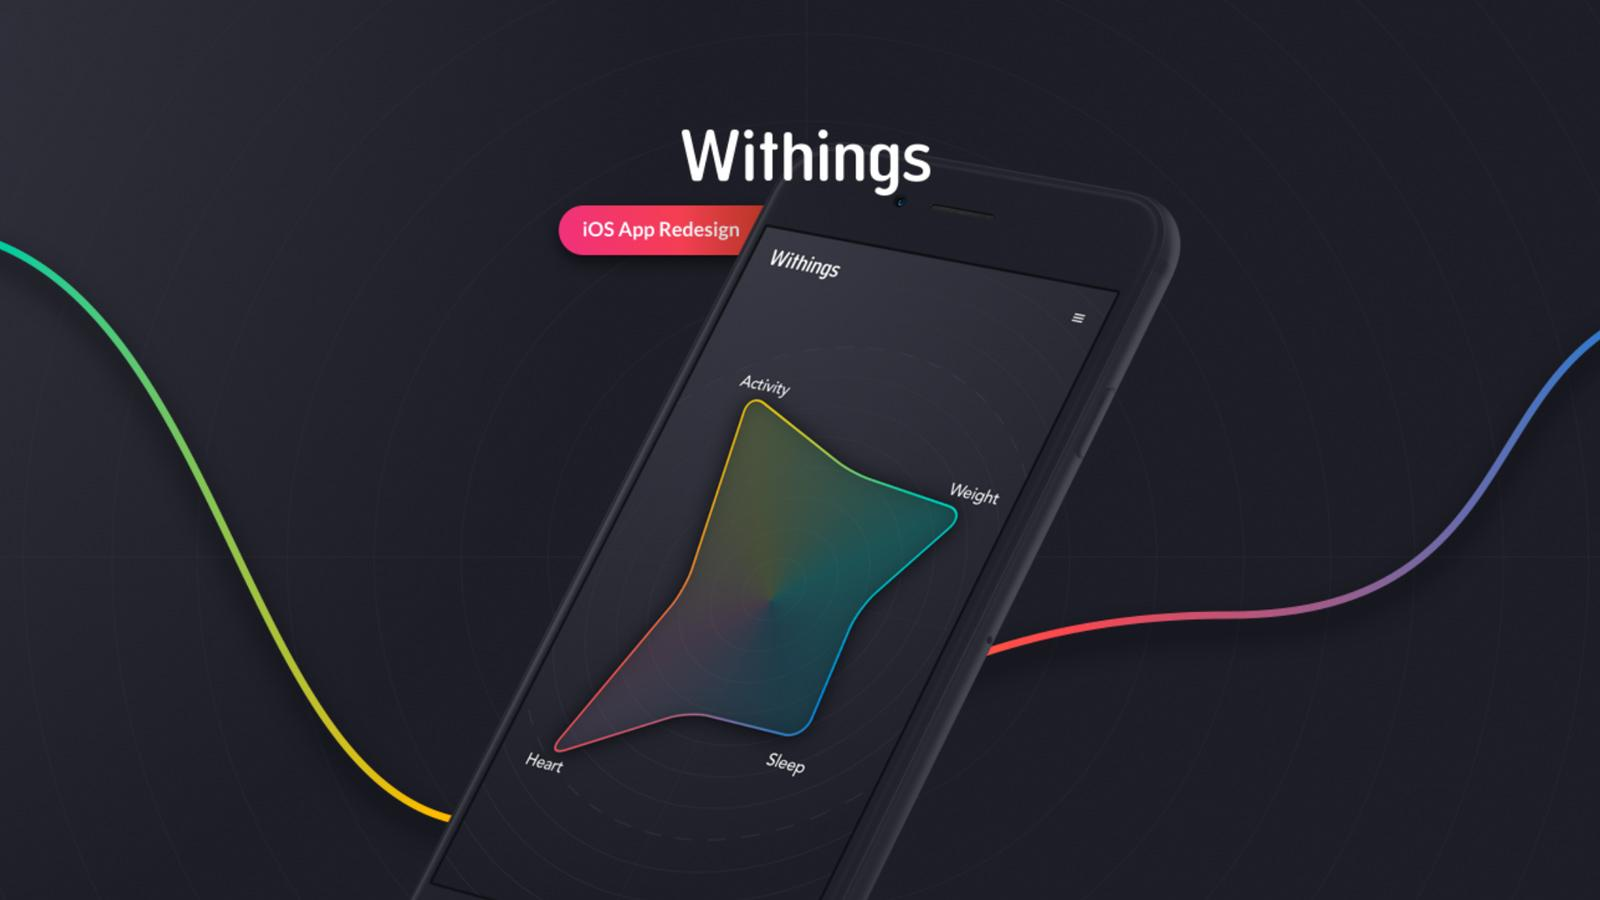 Withings iOS Concept Design